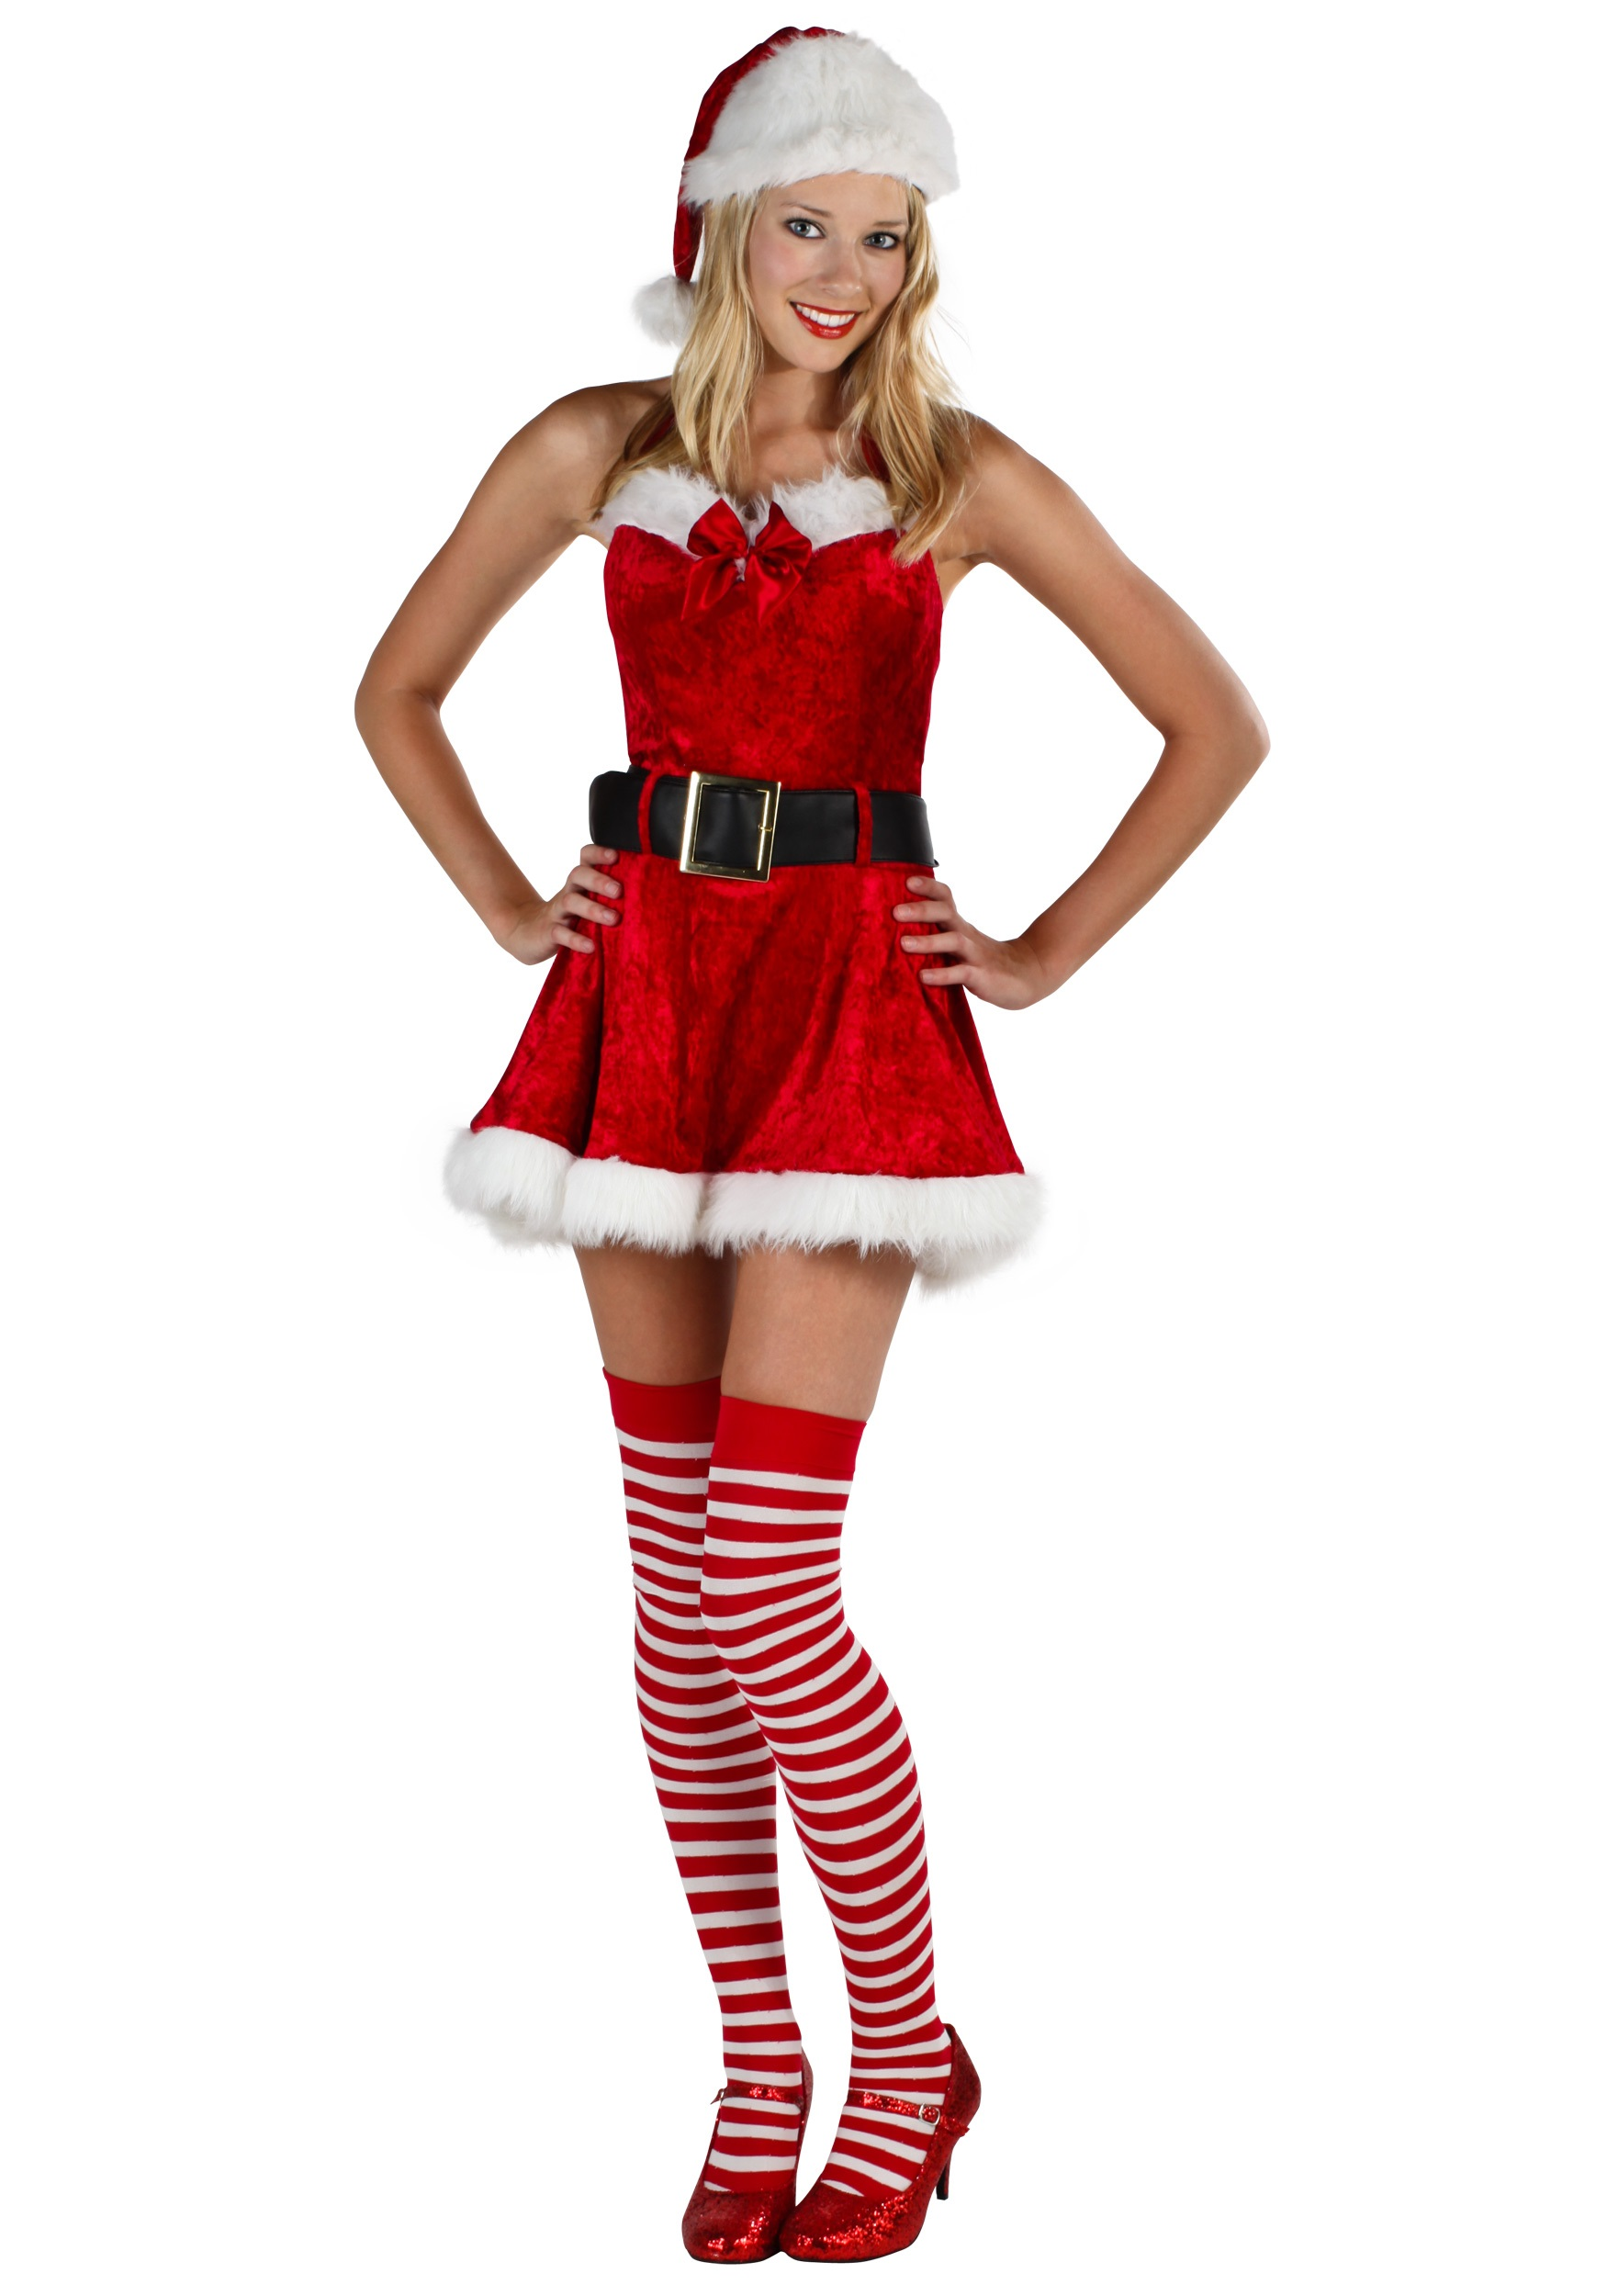 Sexy women in miss claus outfits